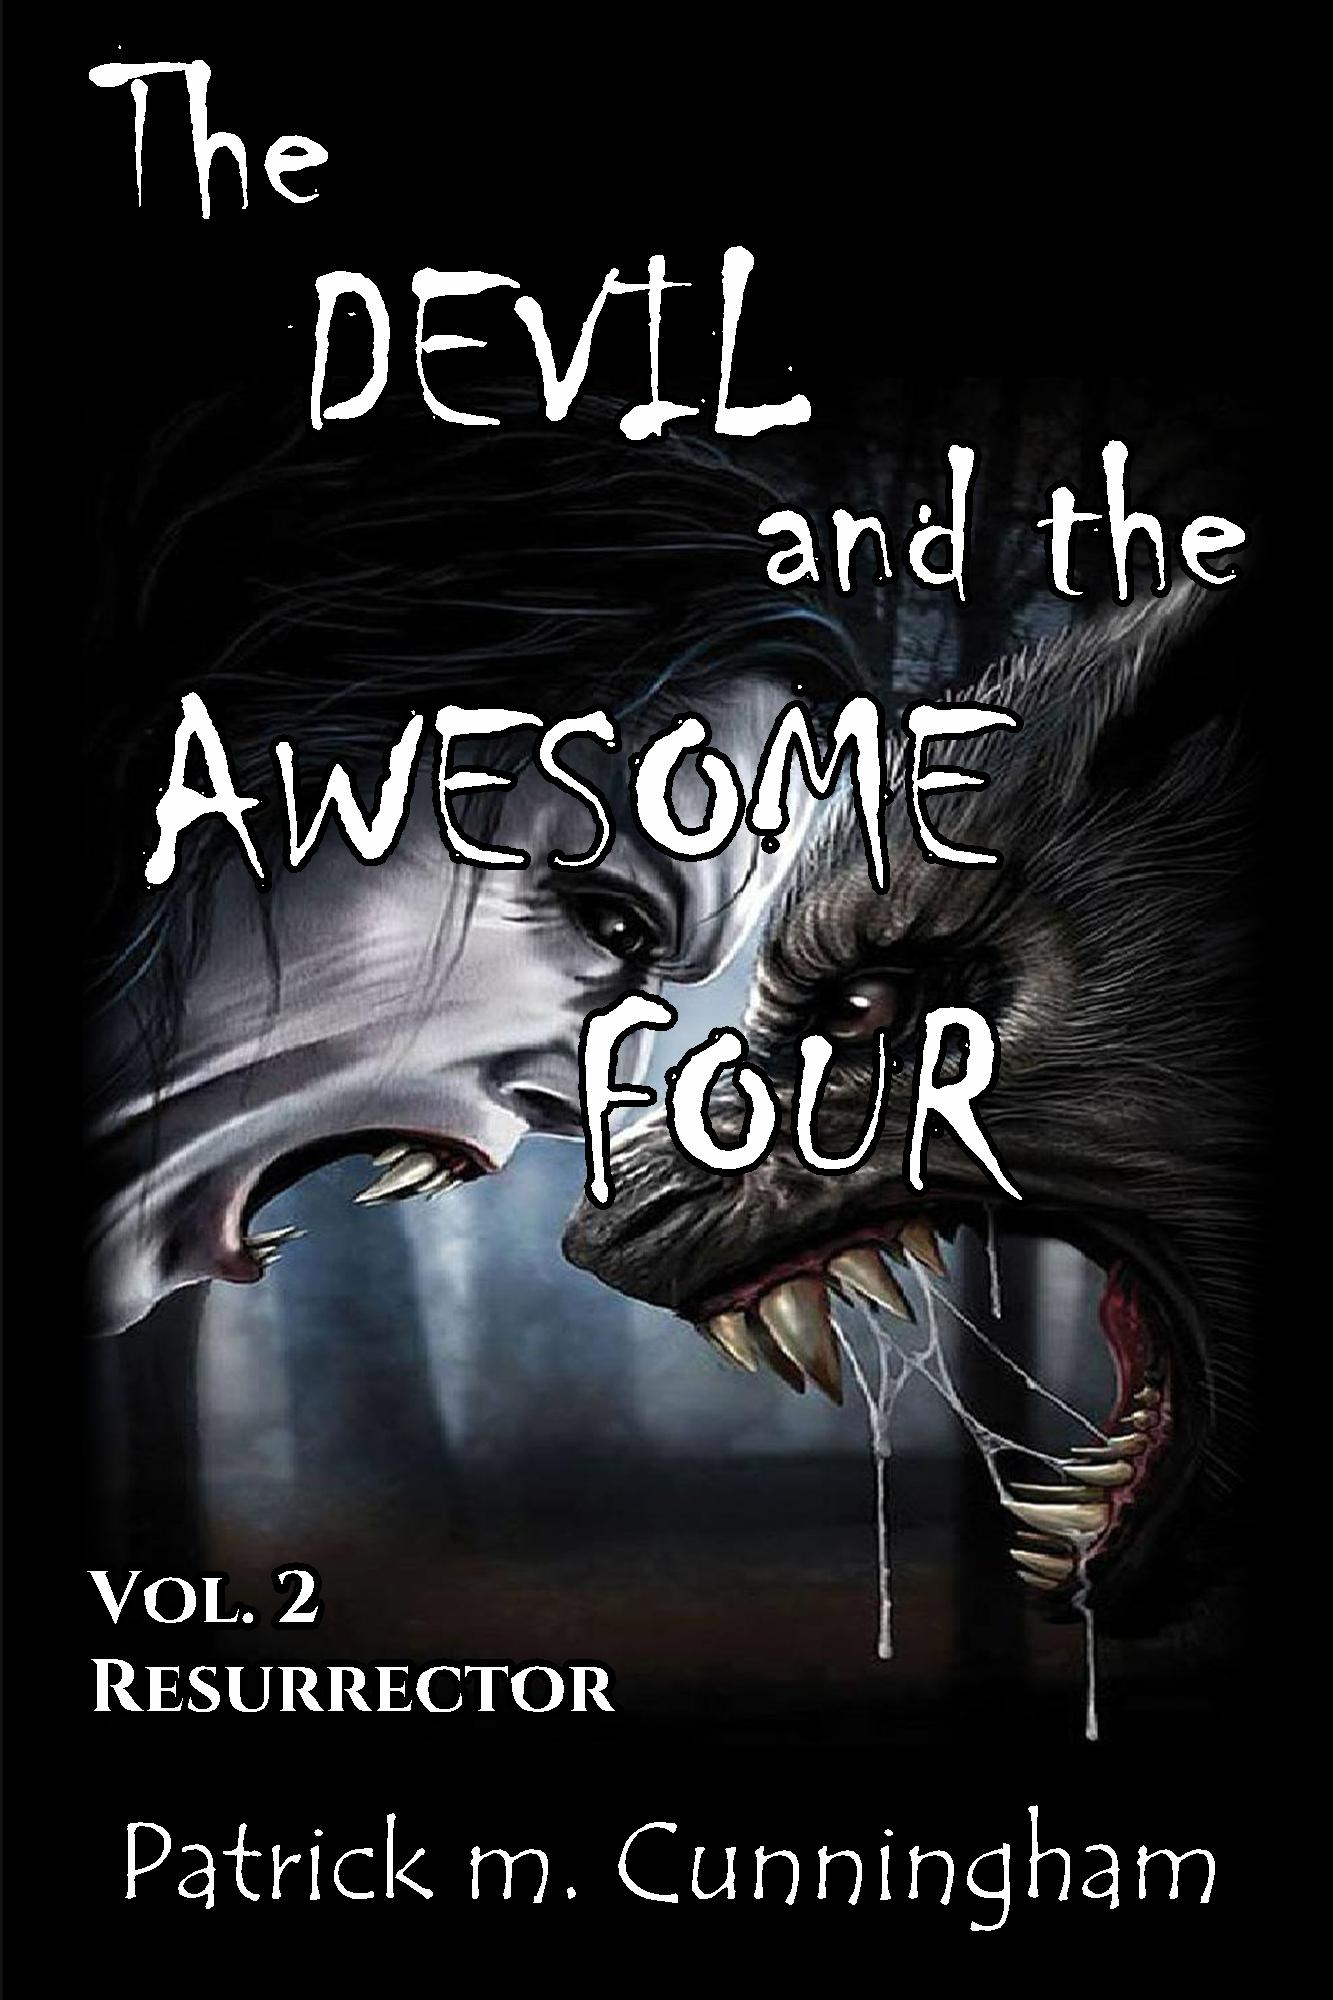 The Devil and the Awesome Four Vol.II Resurrector